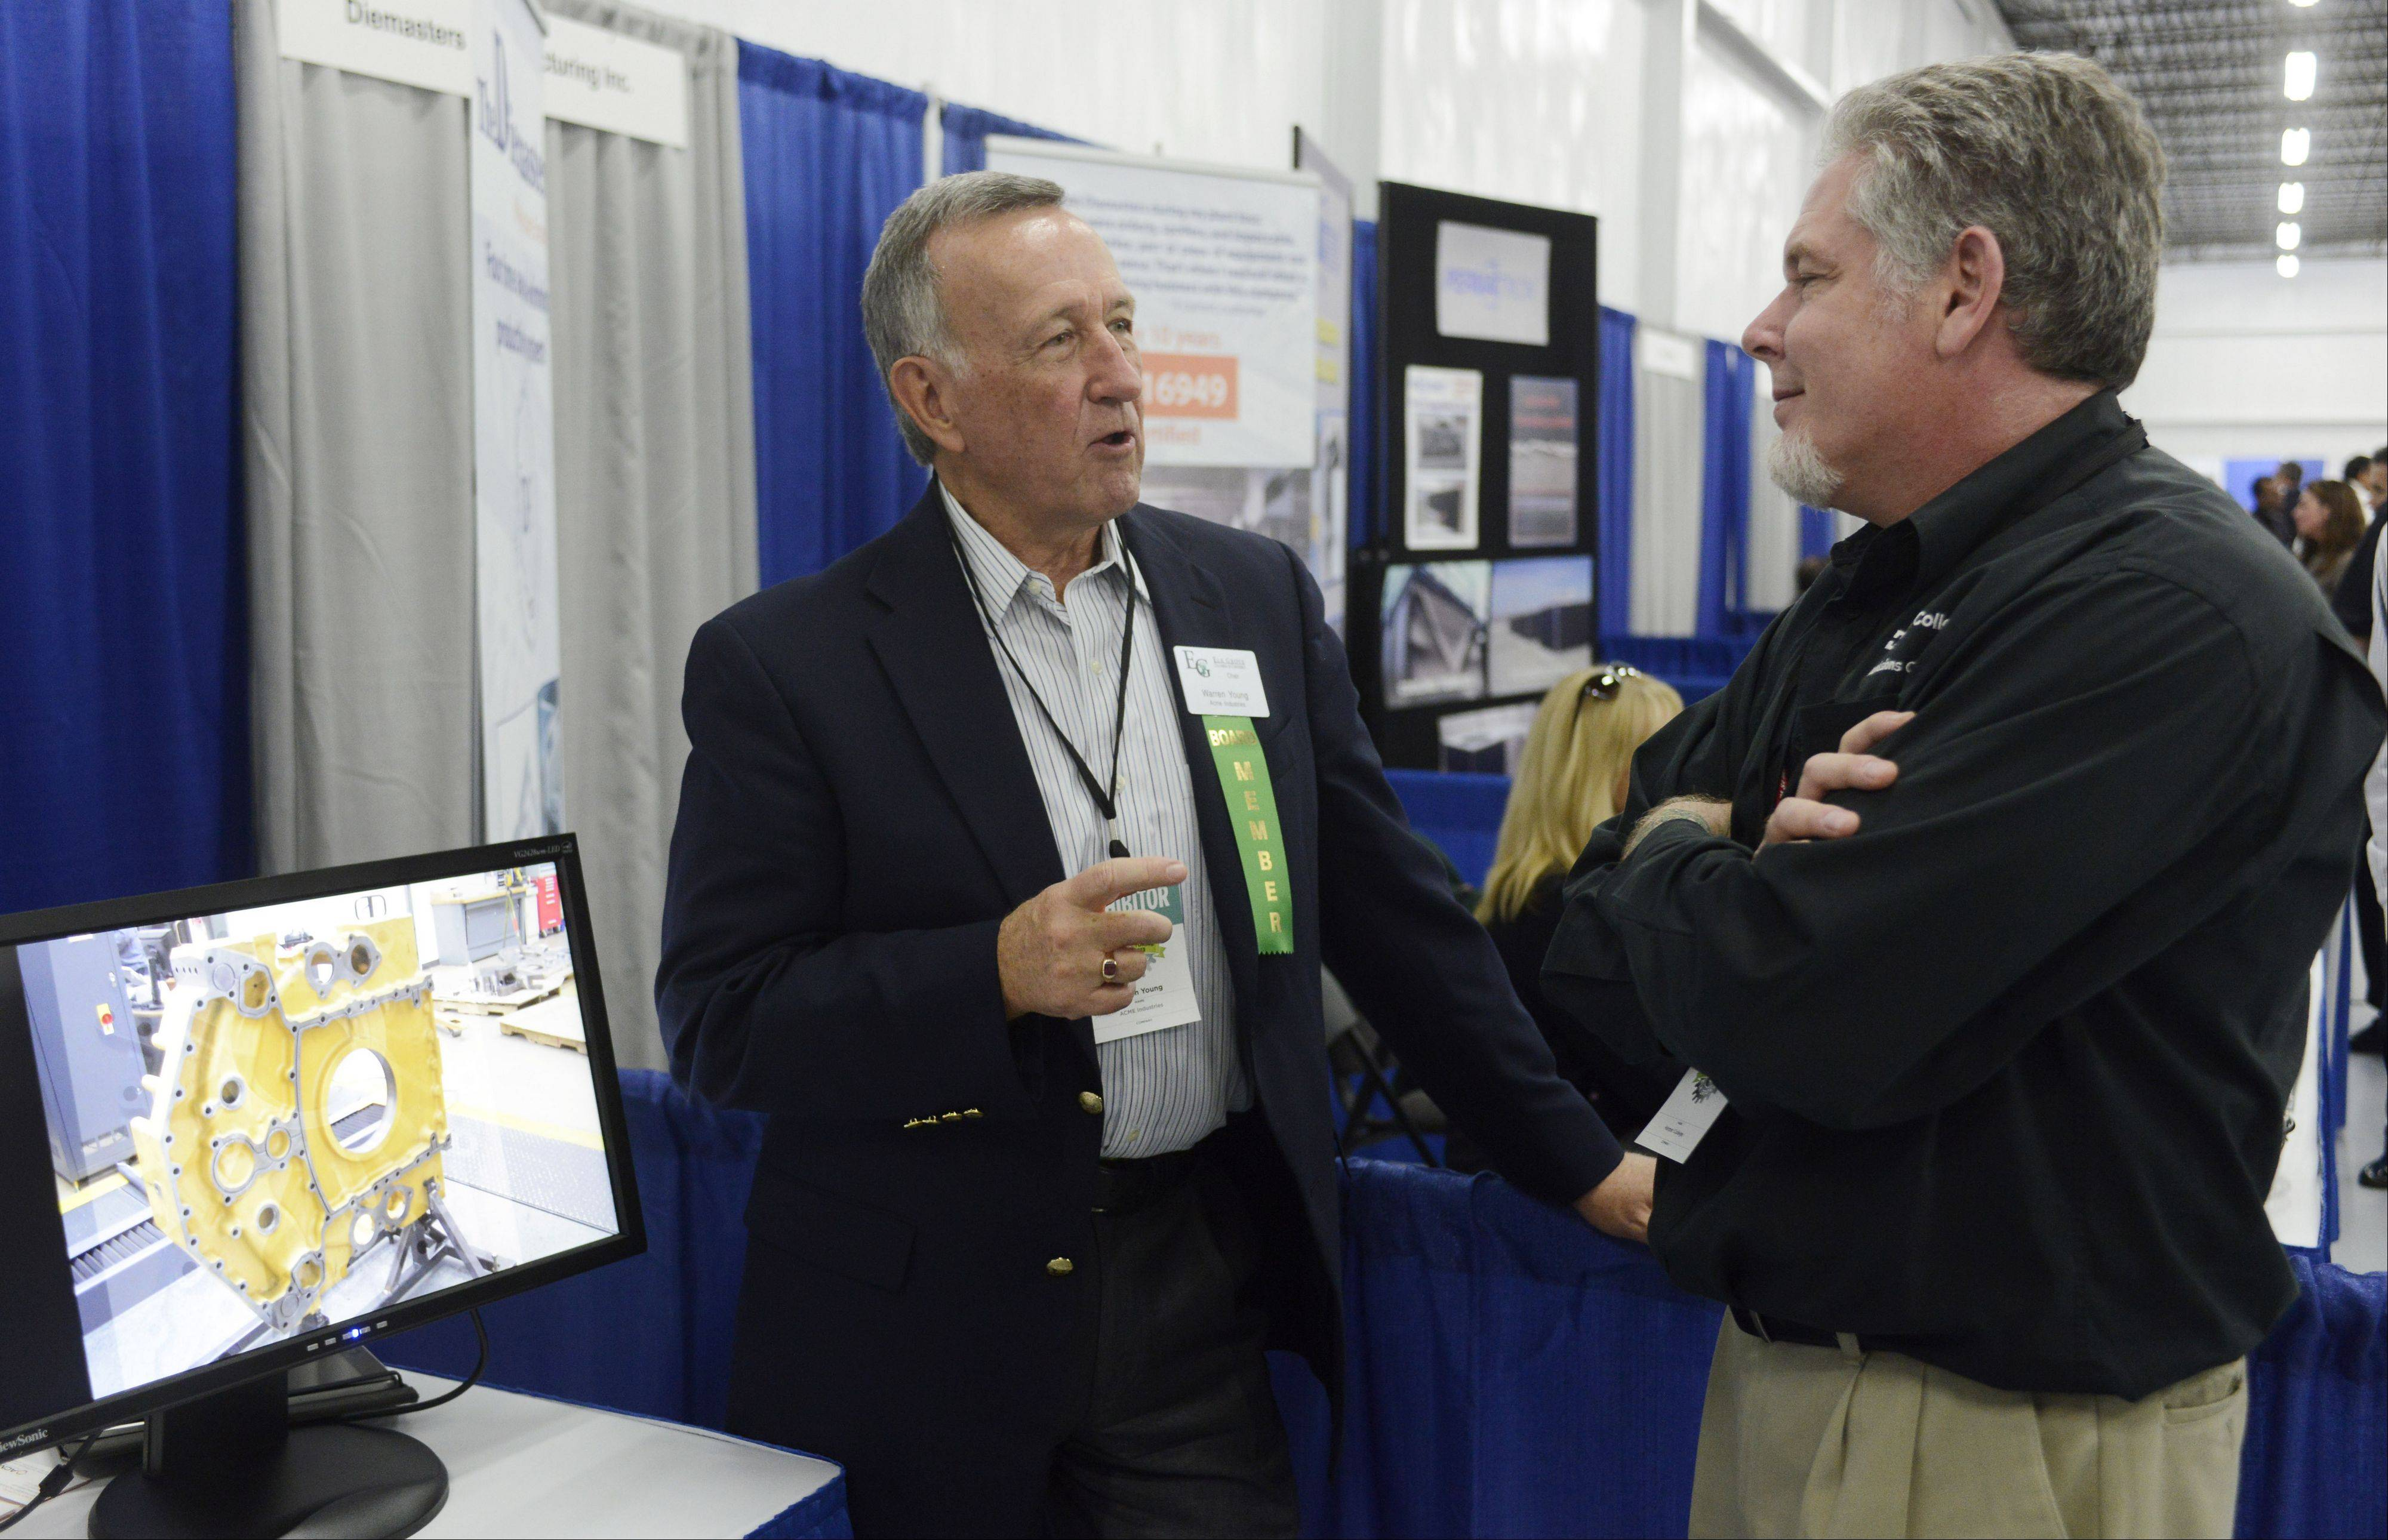 Warren Young, left, of Acme Industries talks with Mark McPherrin of Harper College admissions outreach during the Elk Grove Village business expo Tuesday.